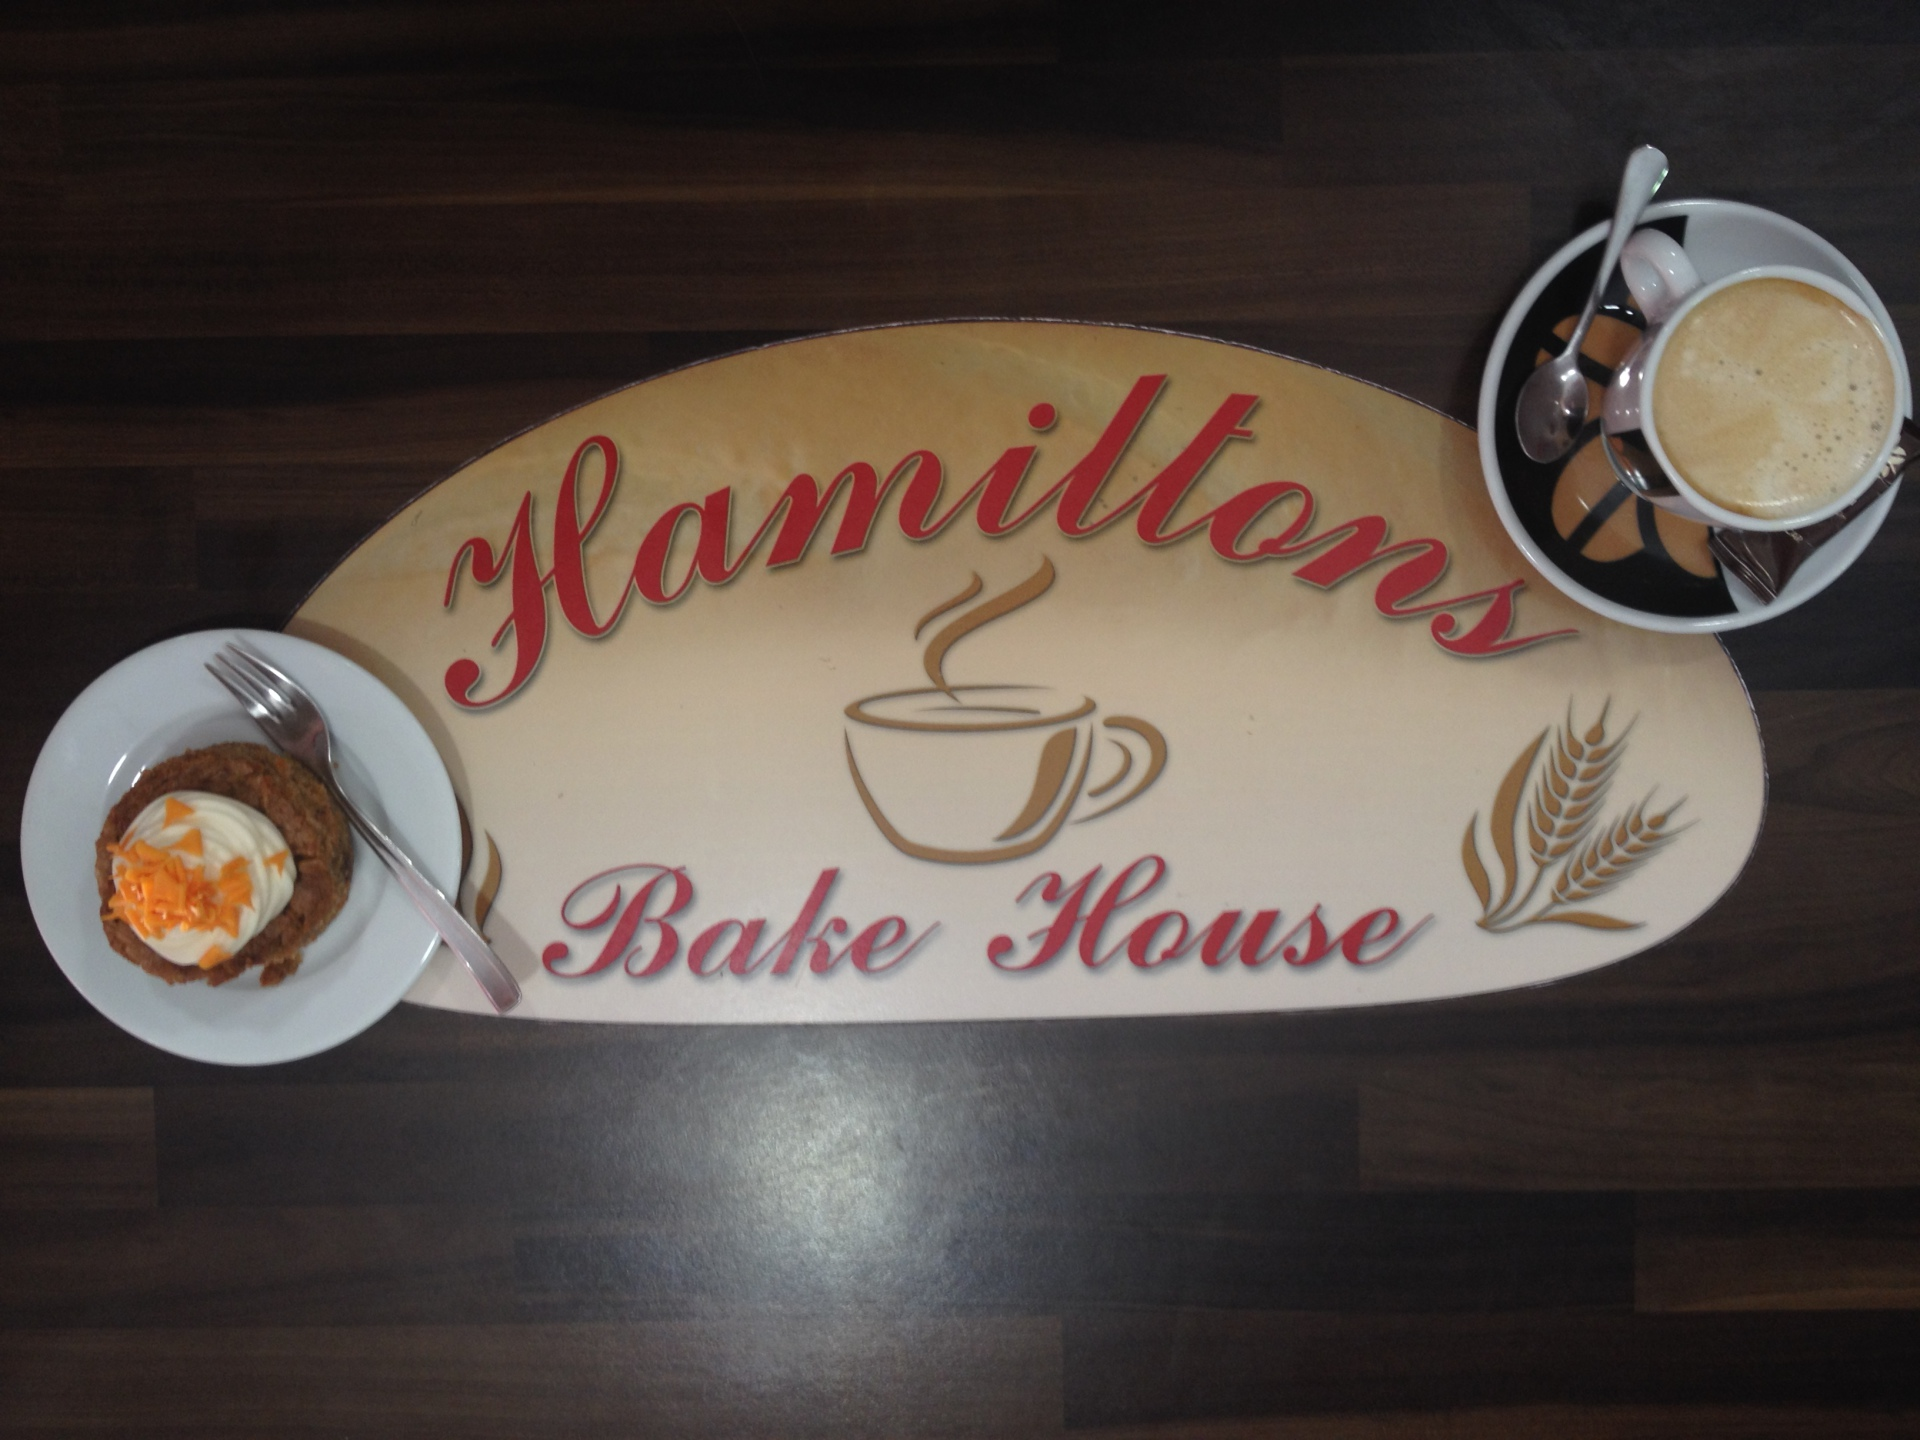 Welcome To Hamiltons Bakehouse!